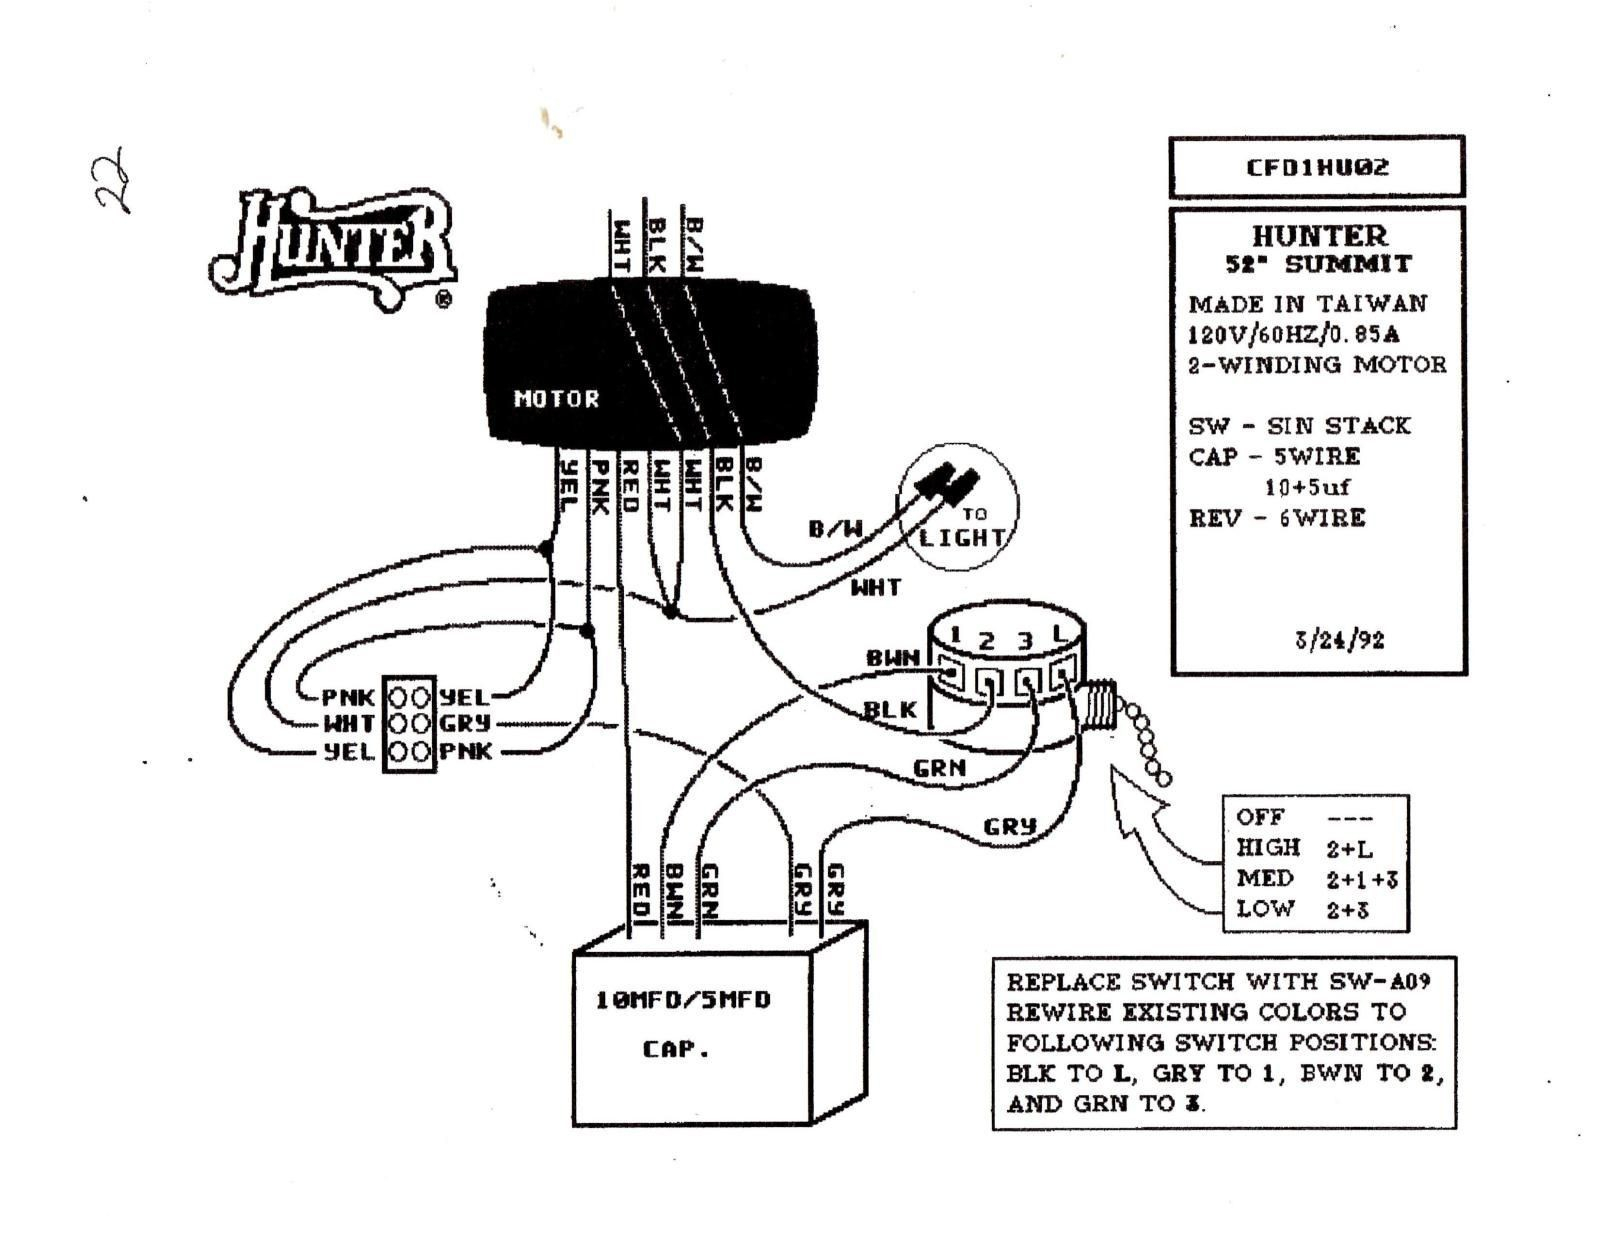 hunter 3 speed fan switch wiring diagram Download-Wiring Diagram for Ceiling Fan Speed Switch New Wiring Diagram for Ceiling Fan Switch New Hunter 17-q